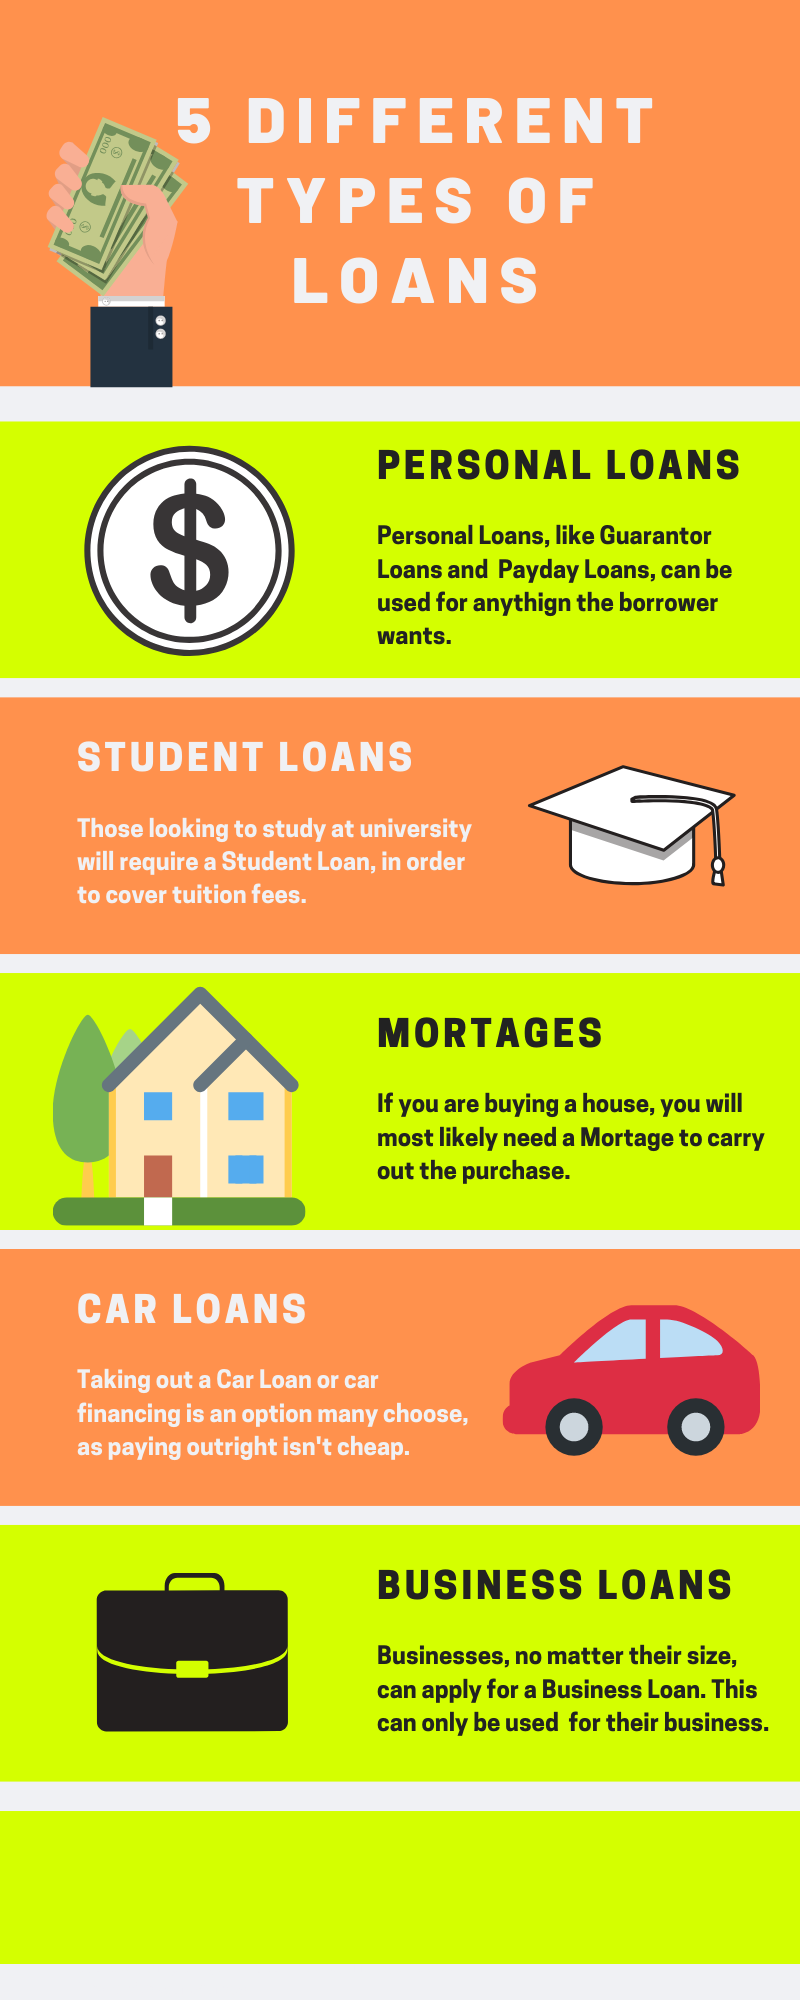 Read 5 Different Types Of Loans